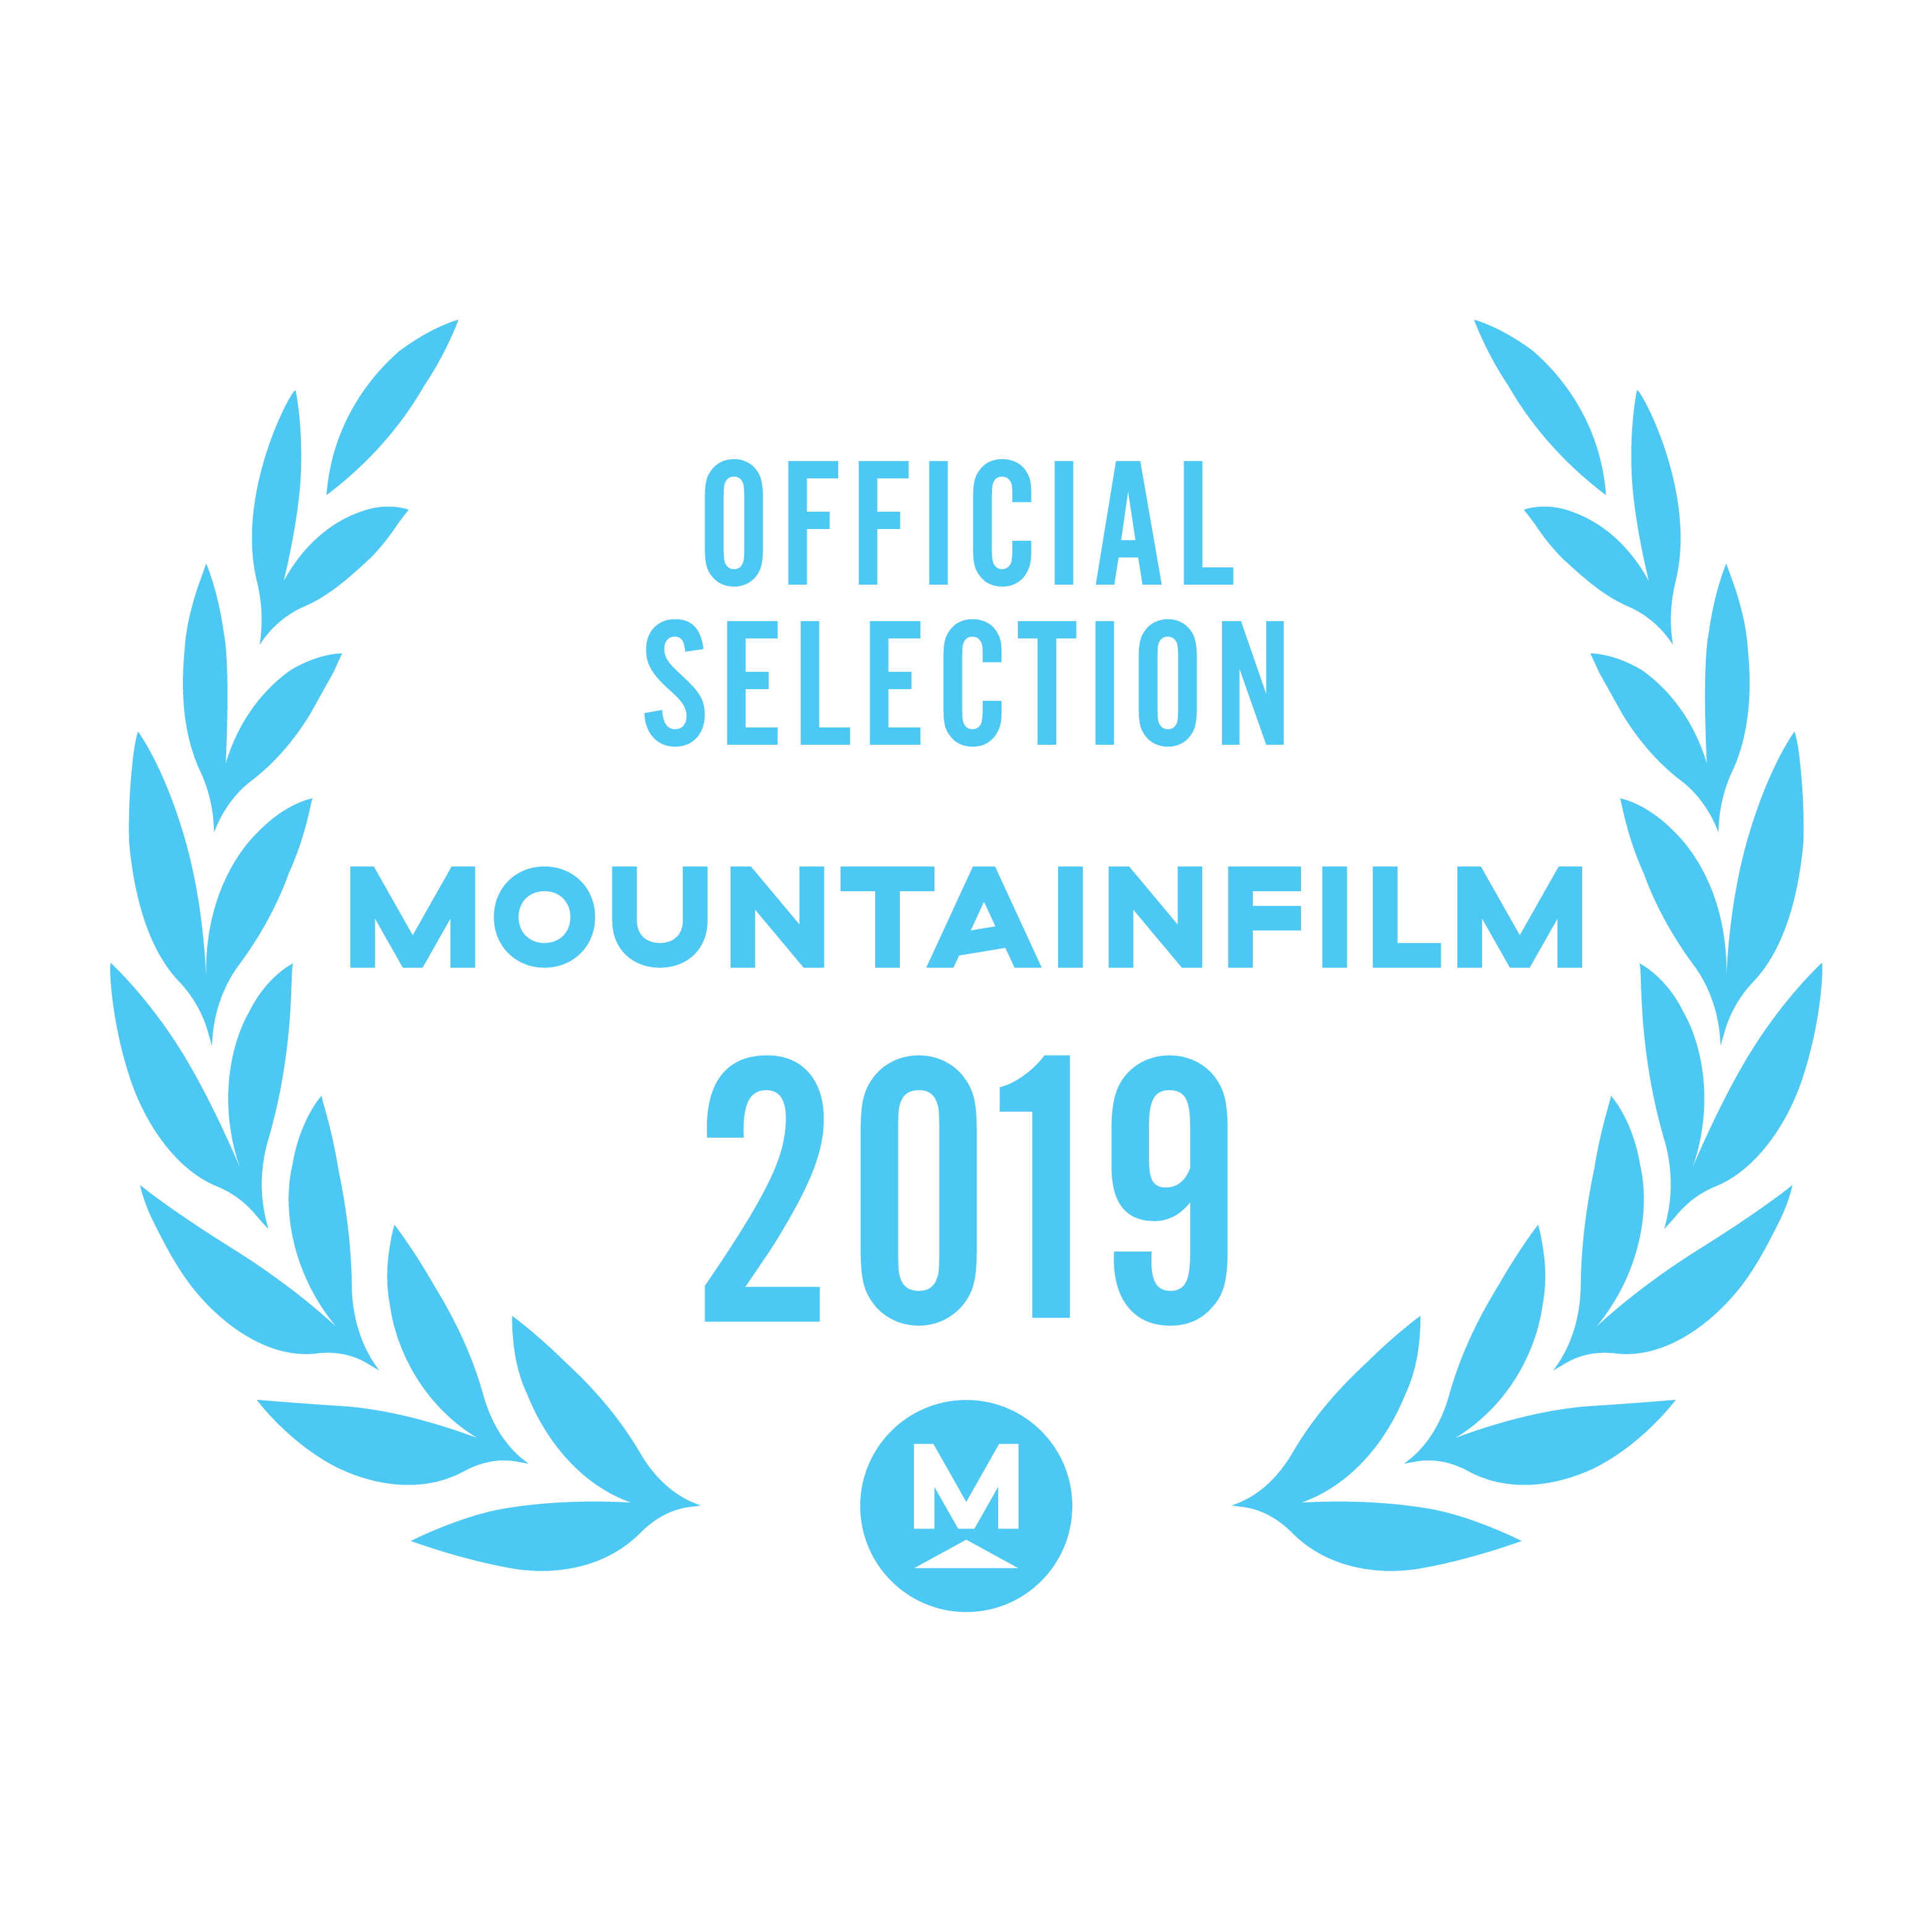 Mountainfilm 2019 Official Selection